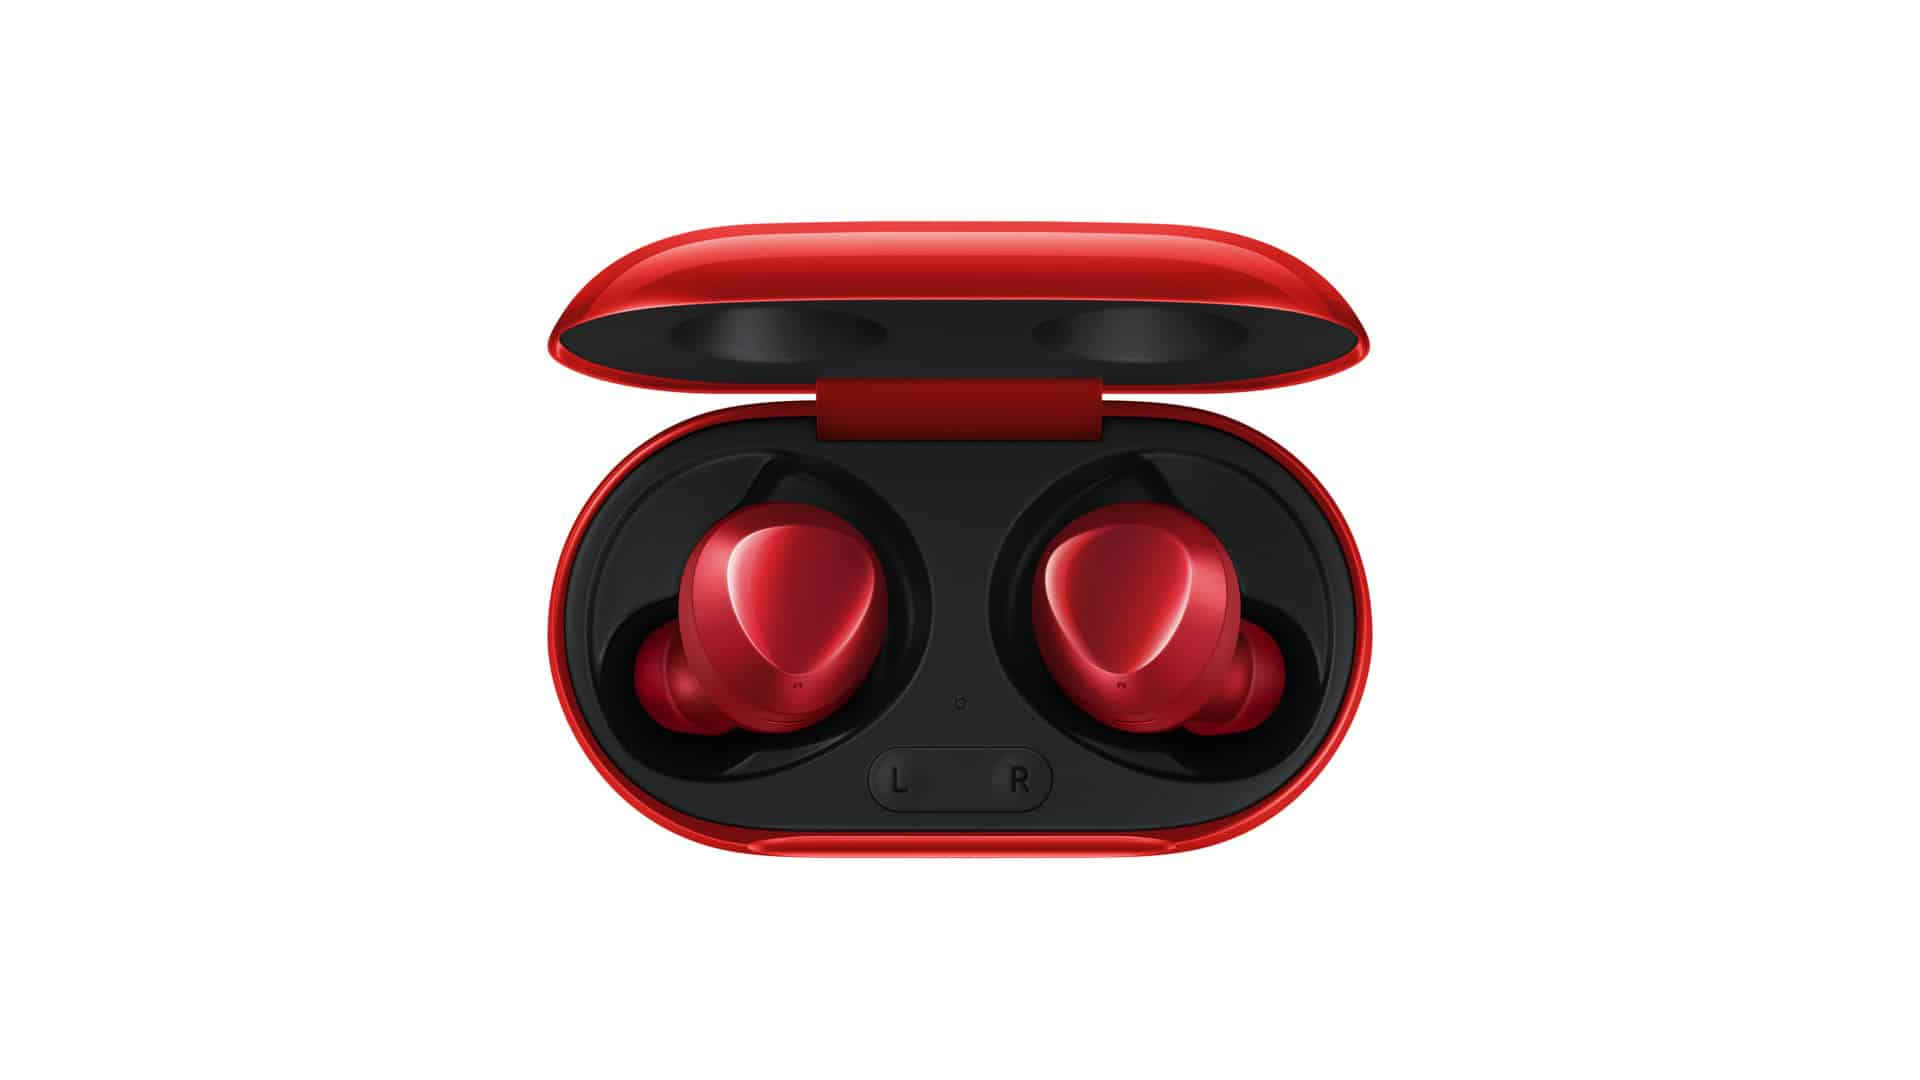 Have A Look At The Samsung Galaxy Buds+ In Red